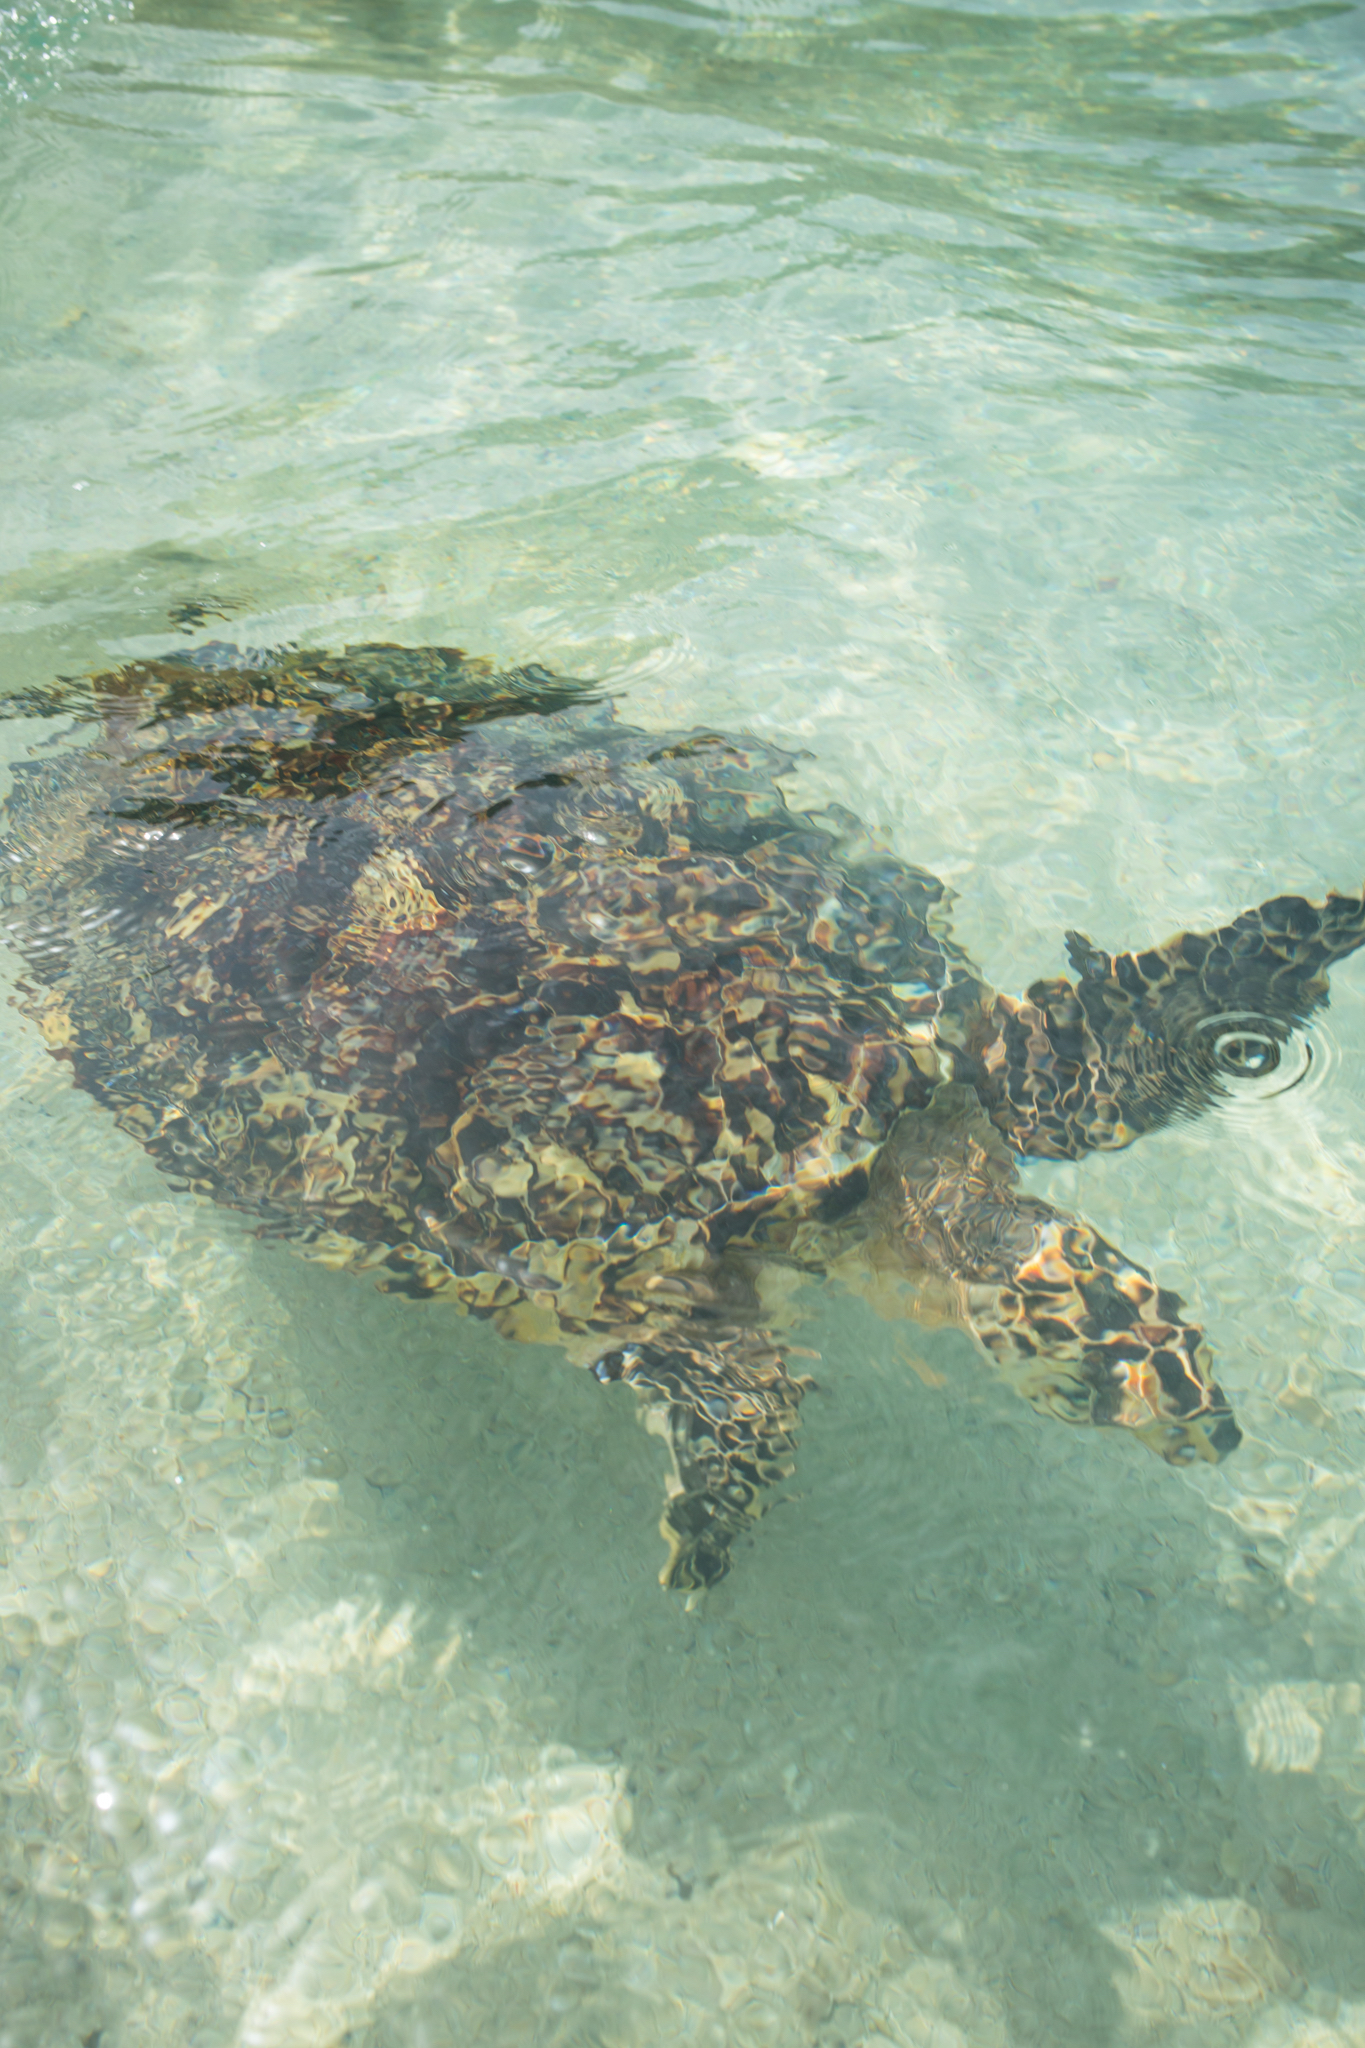 Hawksbill release following an exam.